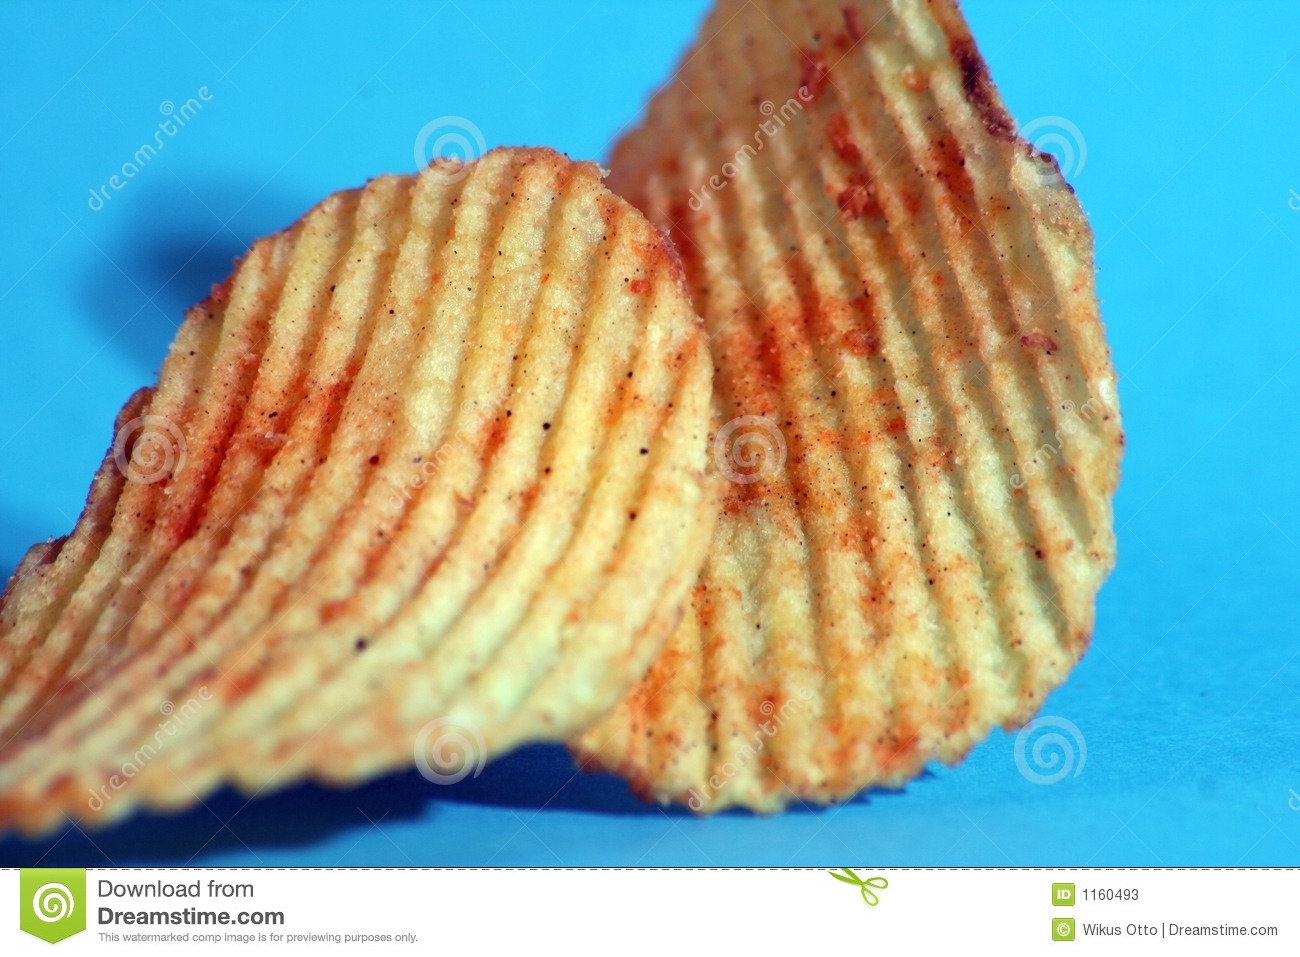 patato chips Thinly cut, red skin potatoes, tossed with olive oil and a variety of seasonings and baked.